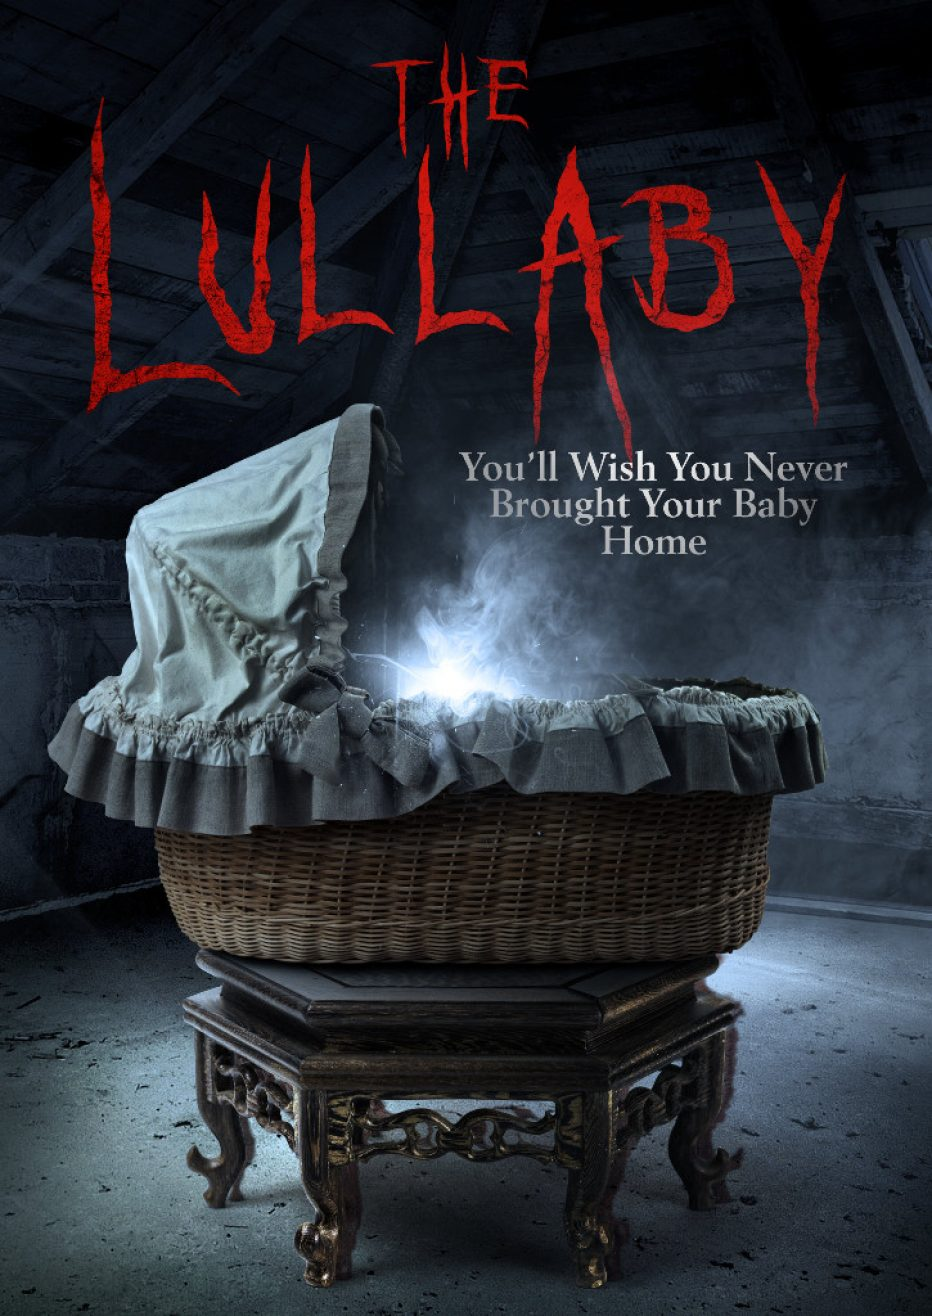 """THE LULLABY"" – IN THEATERS & ON DEMAND MARCH 2 – YOU'LL WISH YOU NEVER BROUGHT THE BABY HOME"